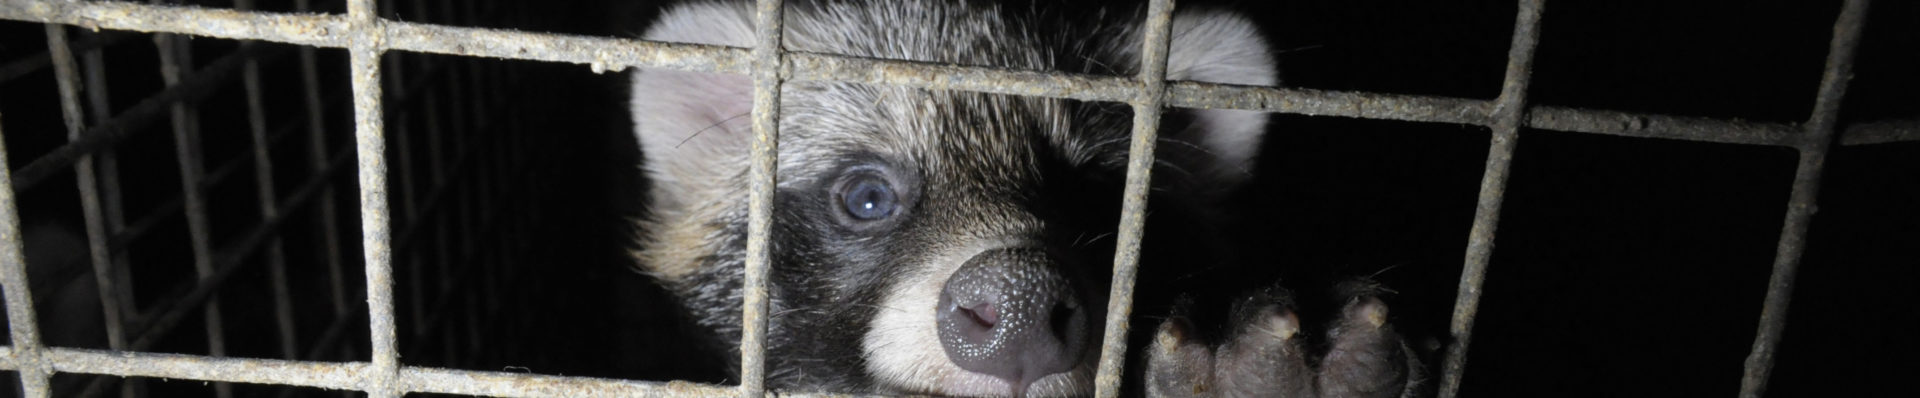 Luxembourg 10th European country to ban fur farming